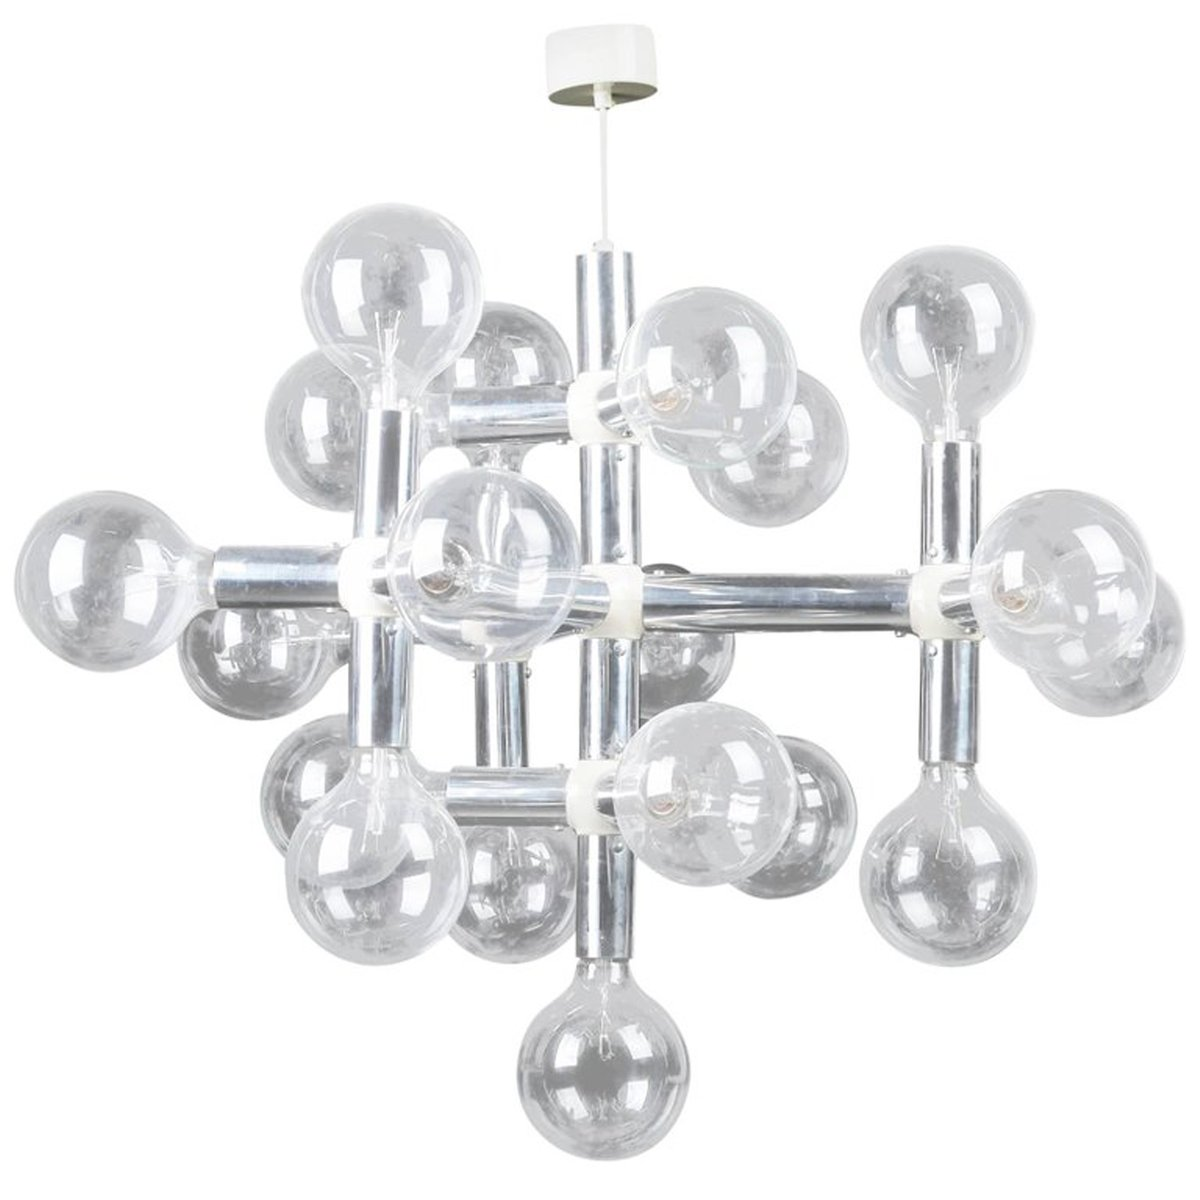 Atomic Chandelier by Robert Haussmann for Swiss Lamps International ...